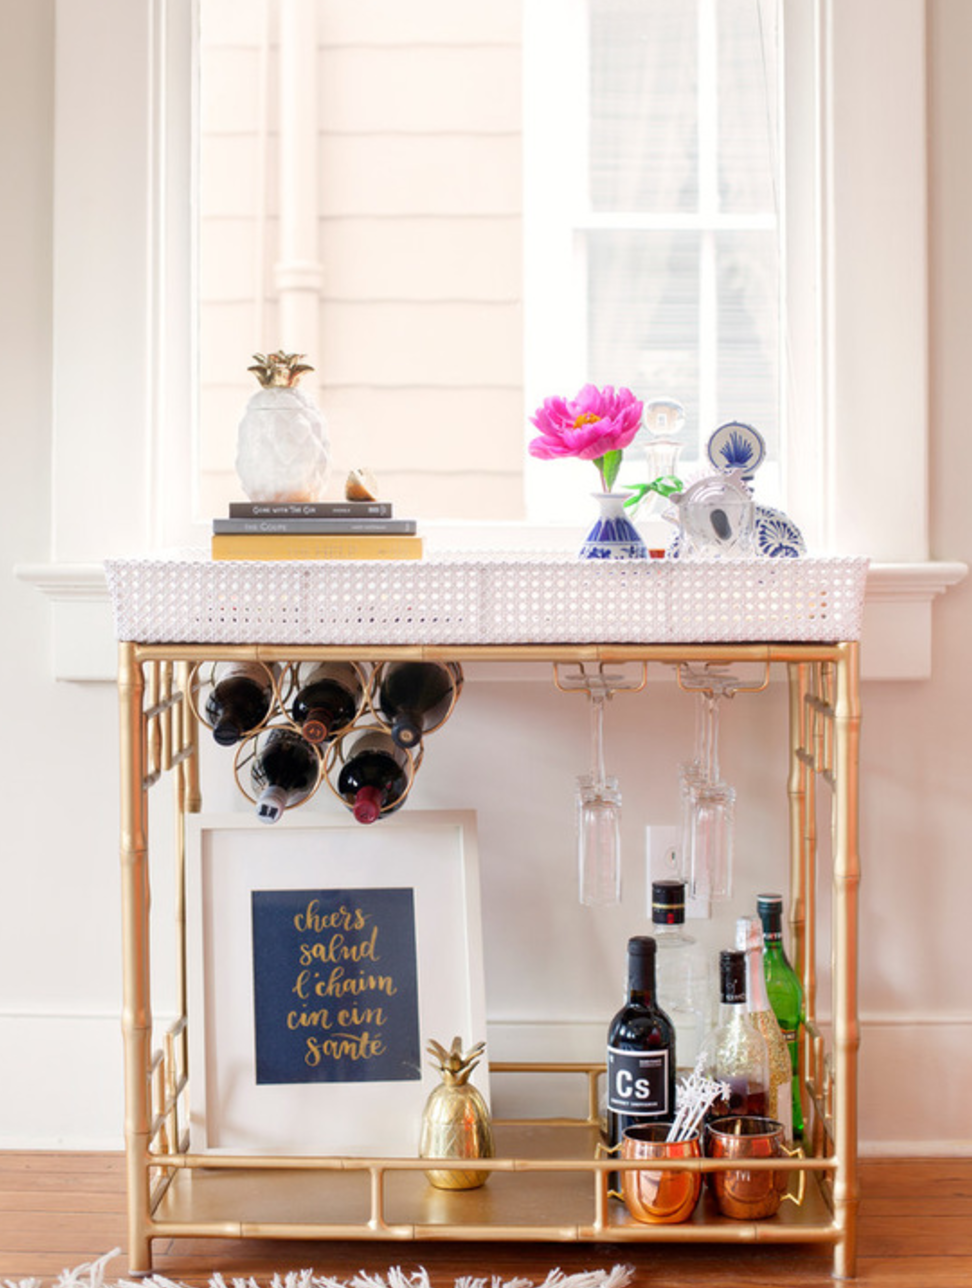 How to Create a Home Bar in 3 Steps